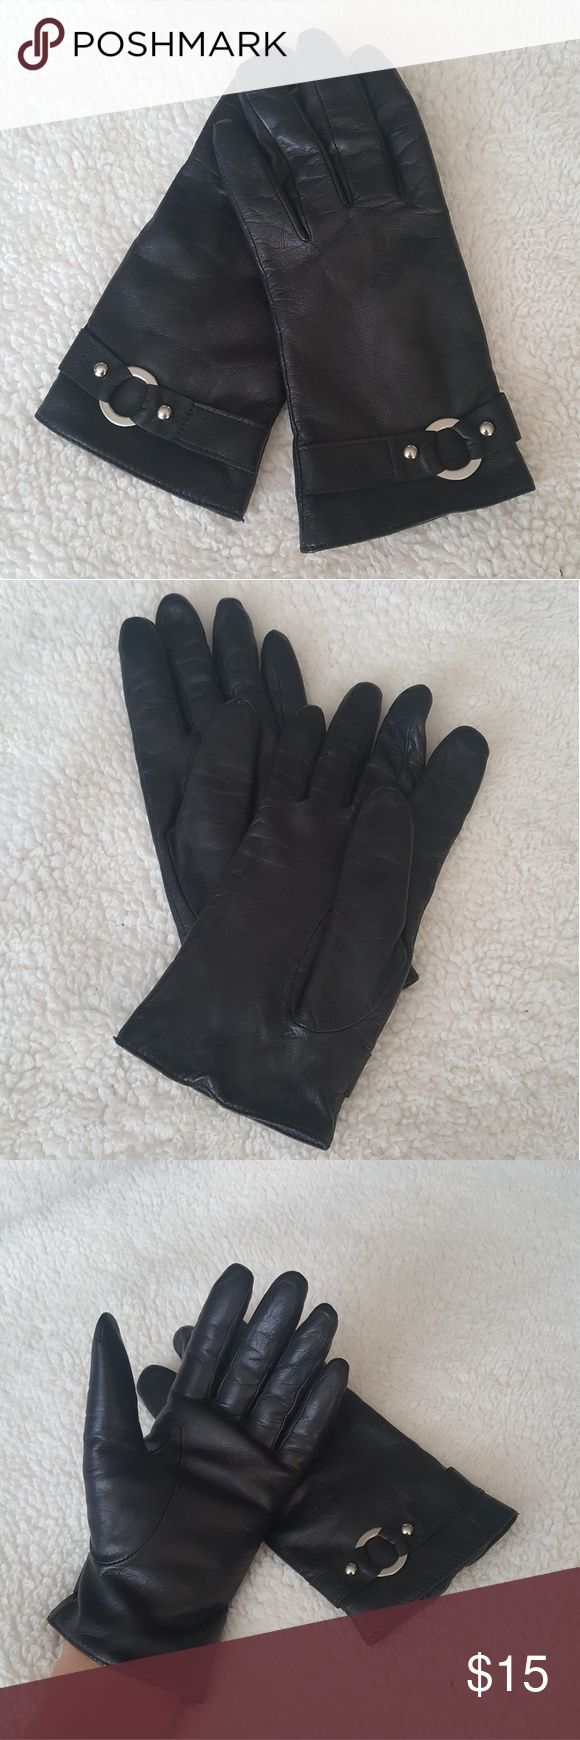 Black leather gloves small - Genuine Leather Gloves